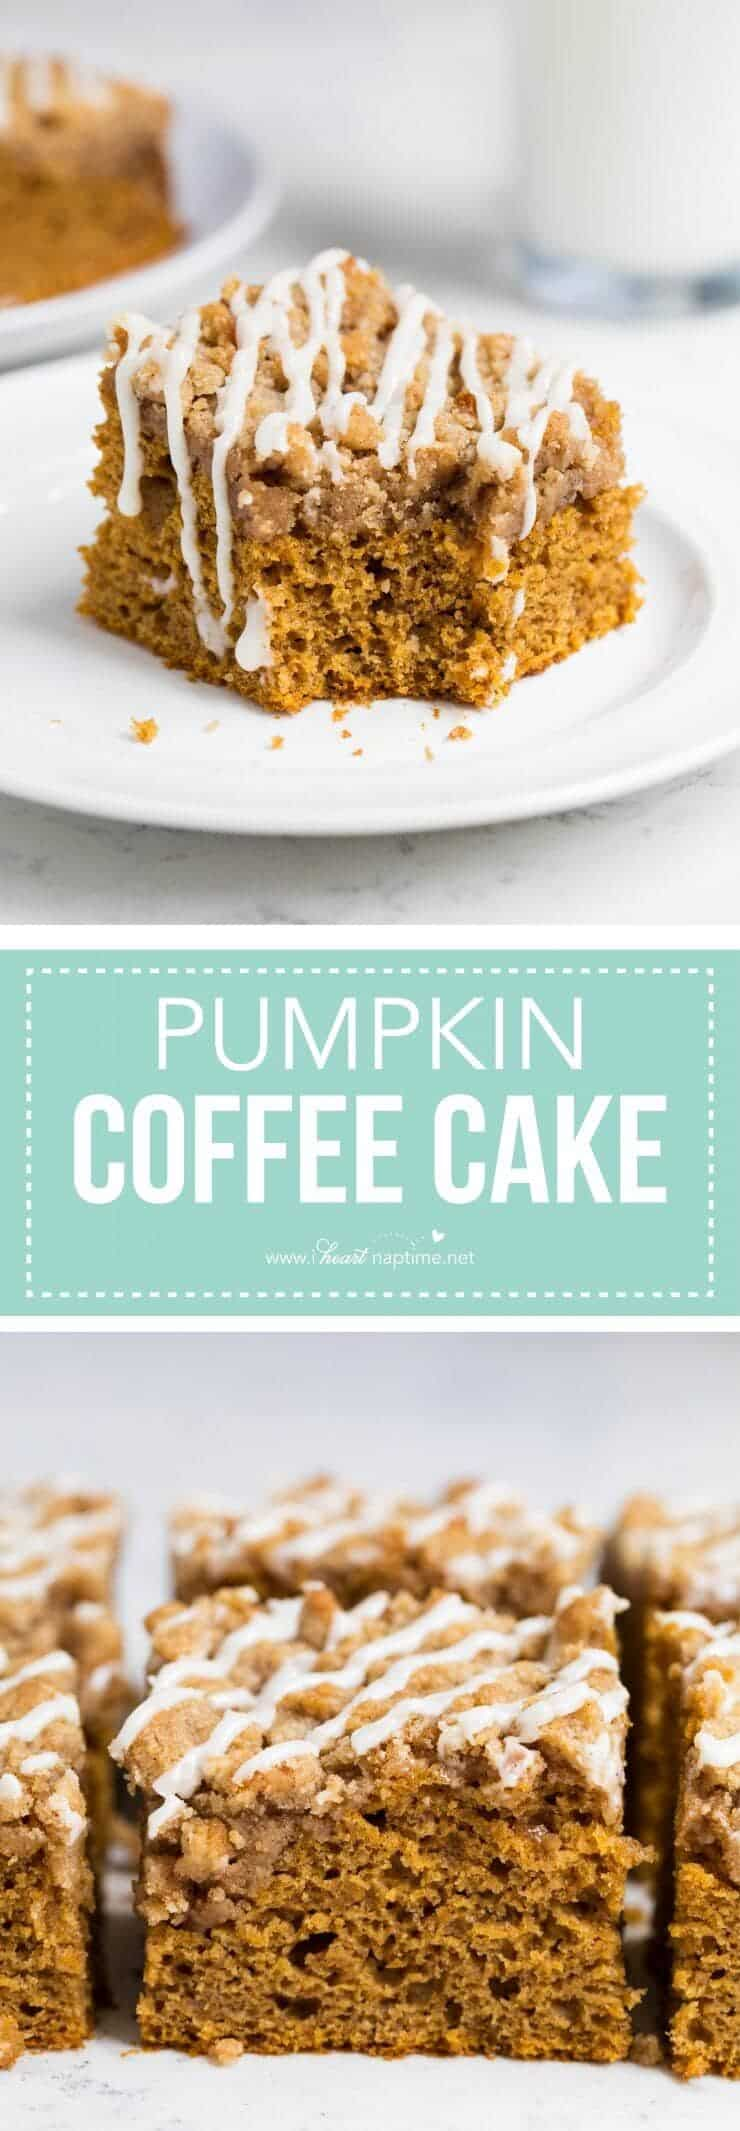 Pumpkin streusel coffee cake -a pumpkin spiced cake topped with a delicious brown sugar streusel and maple glaze.